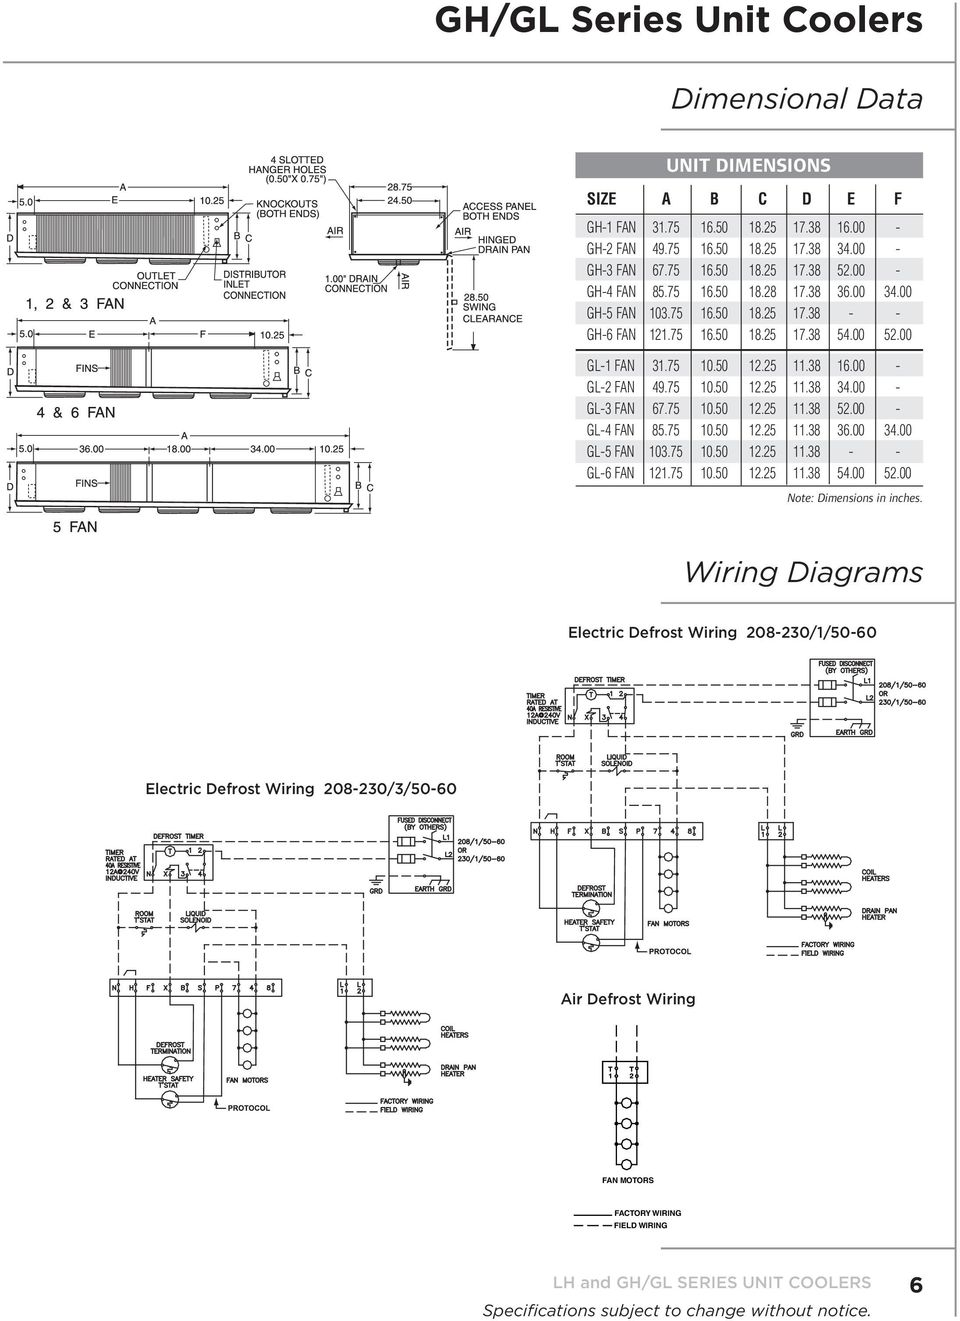 lh and gh  gl series unit coolers  technical bulletin  lhgh